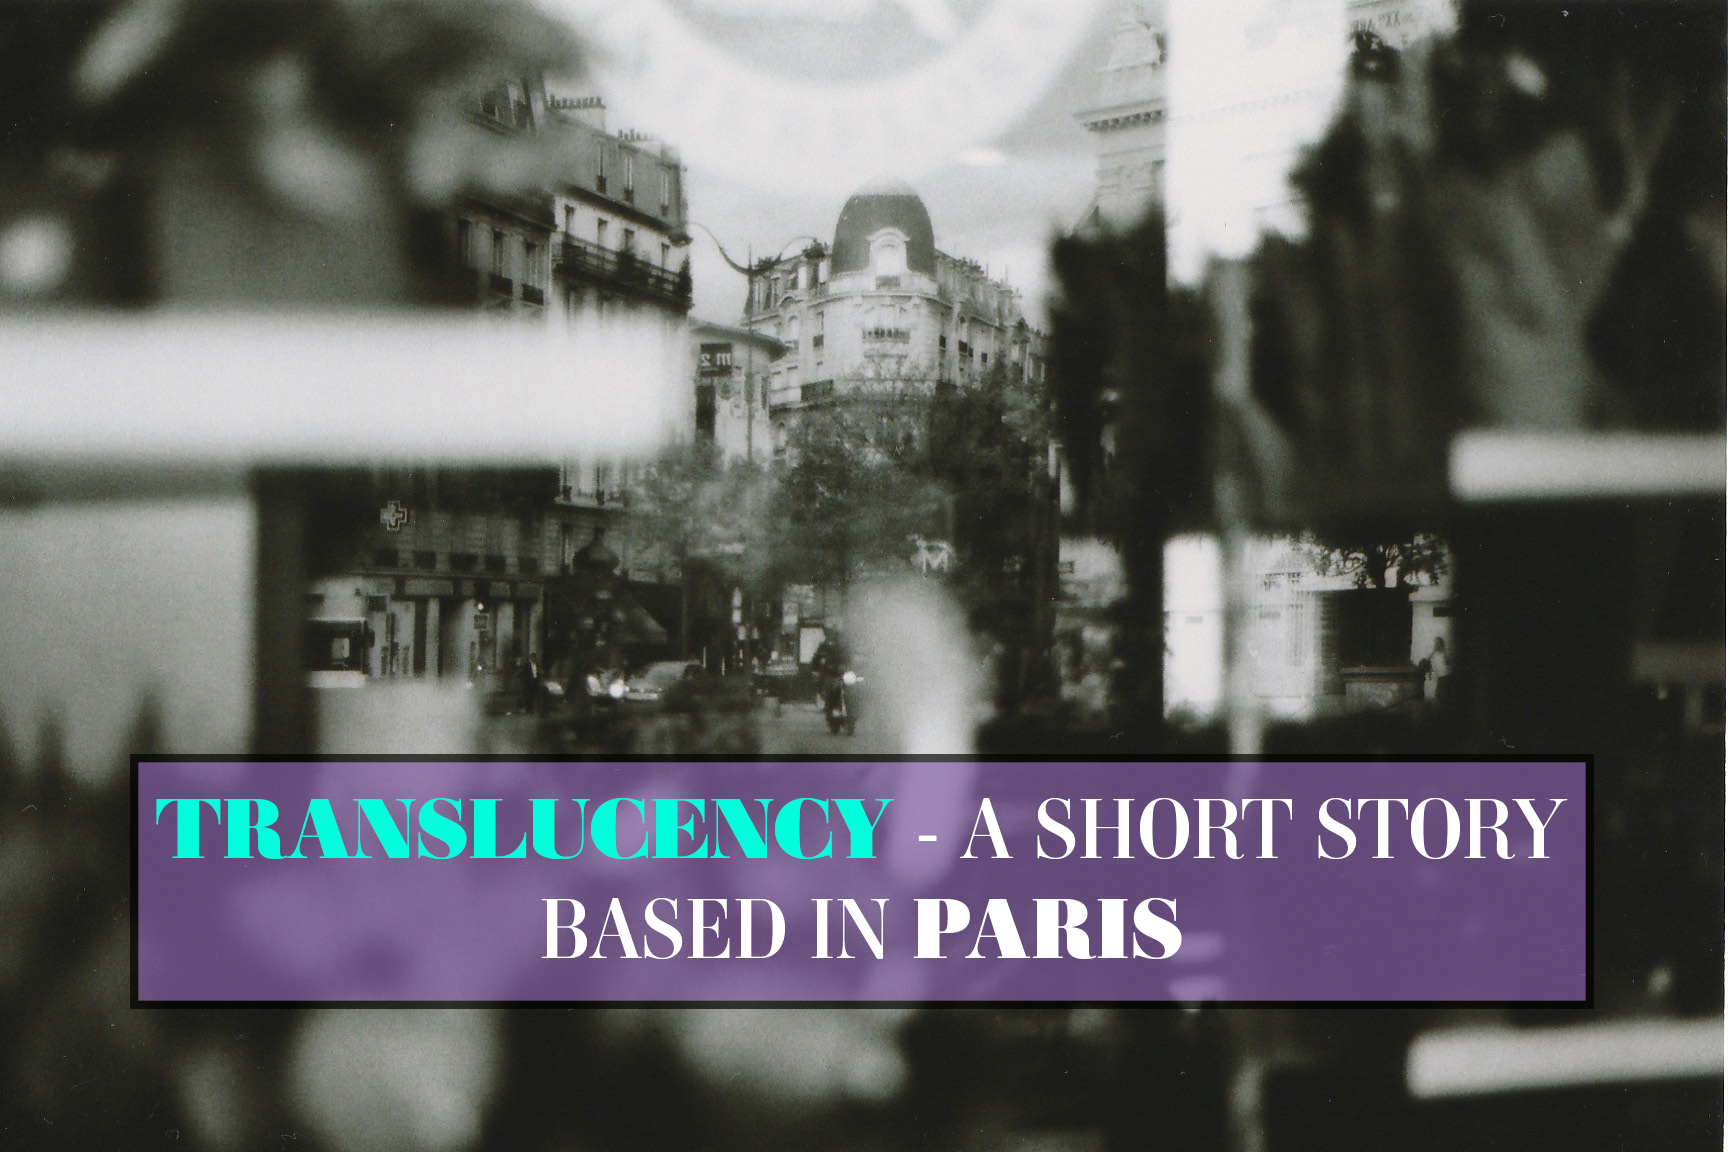 short story, paris, belleville, buttes chaumont, chloe cotter, chloe cotter writer